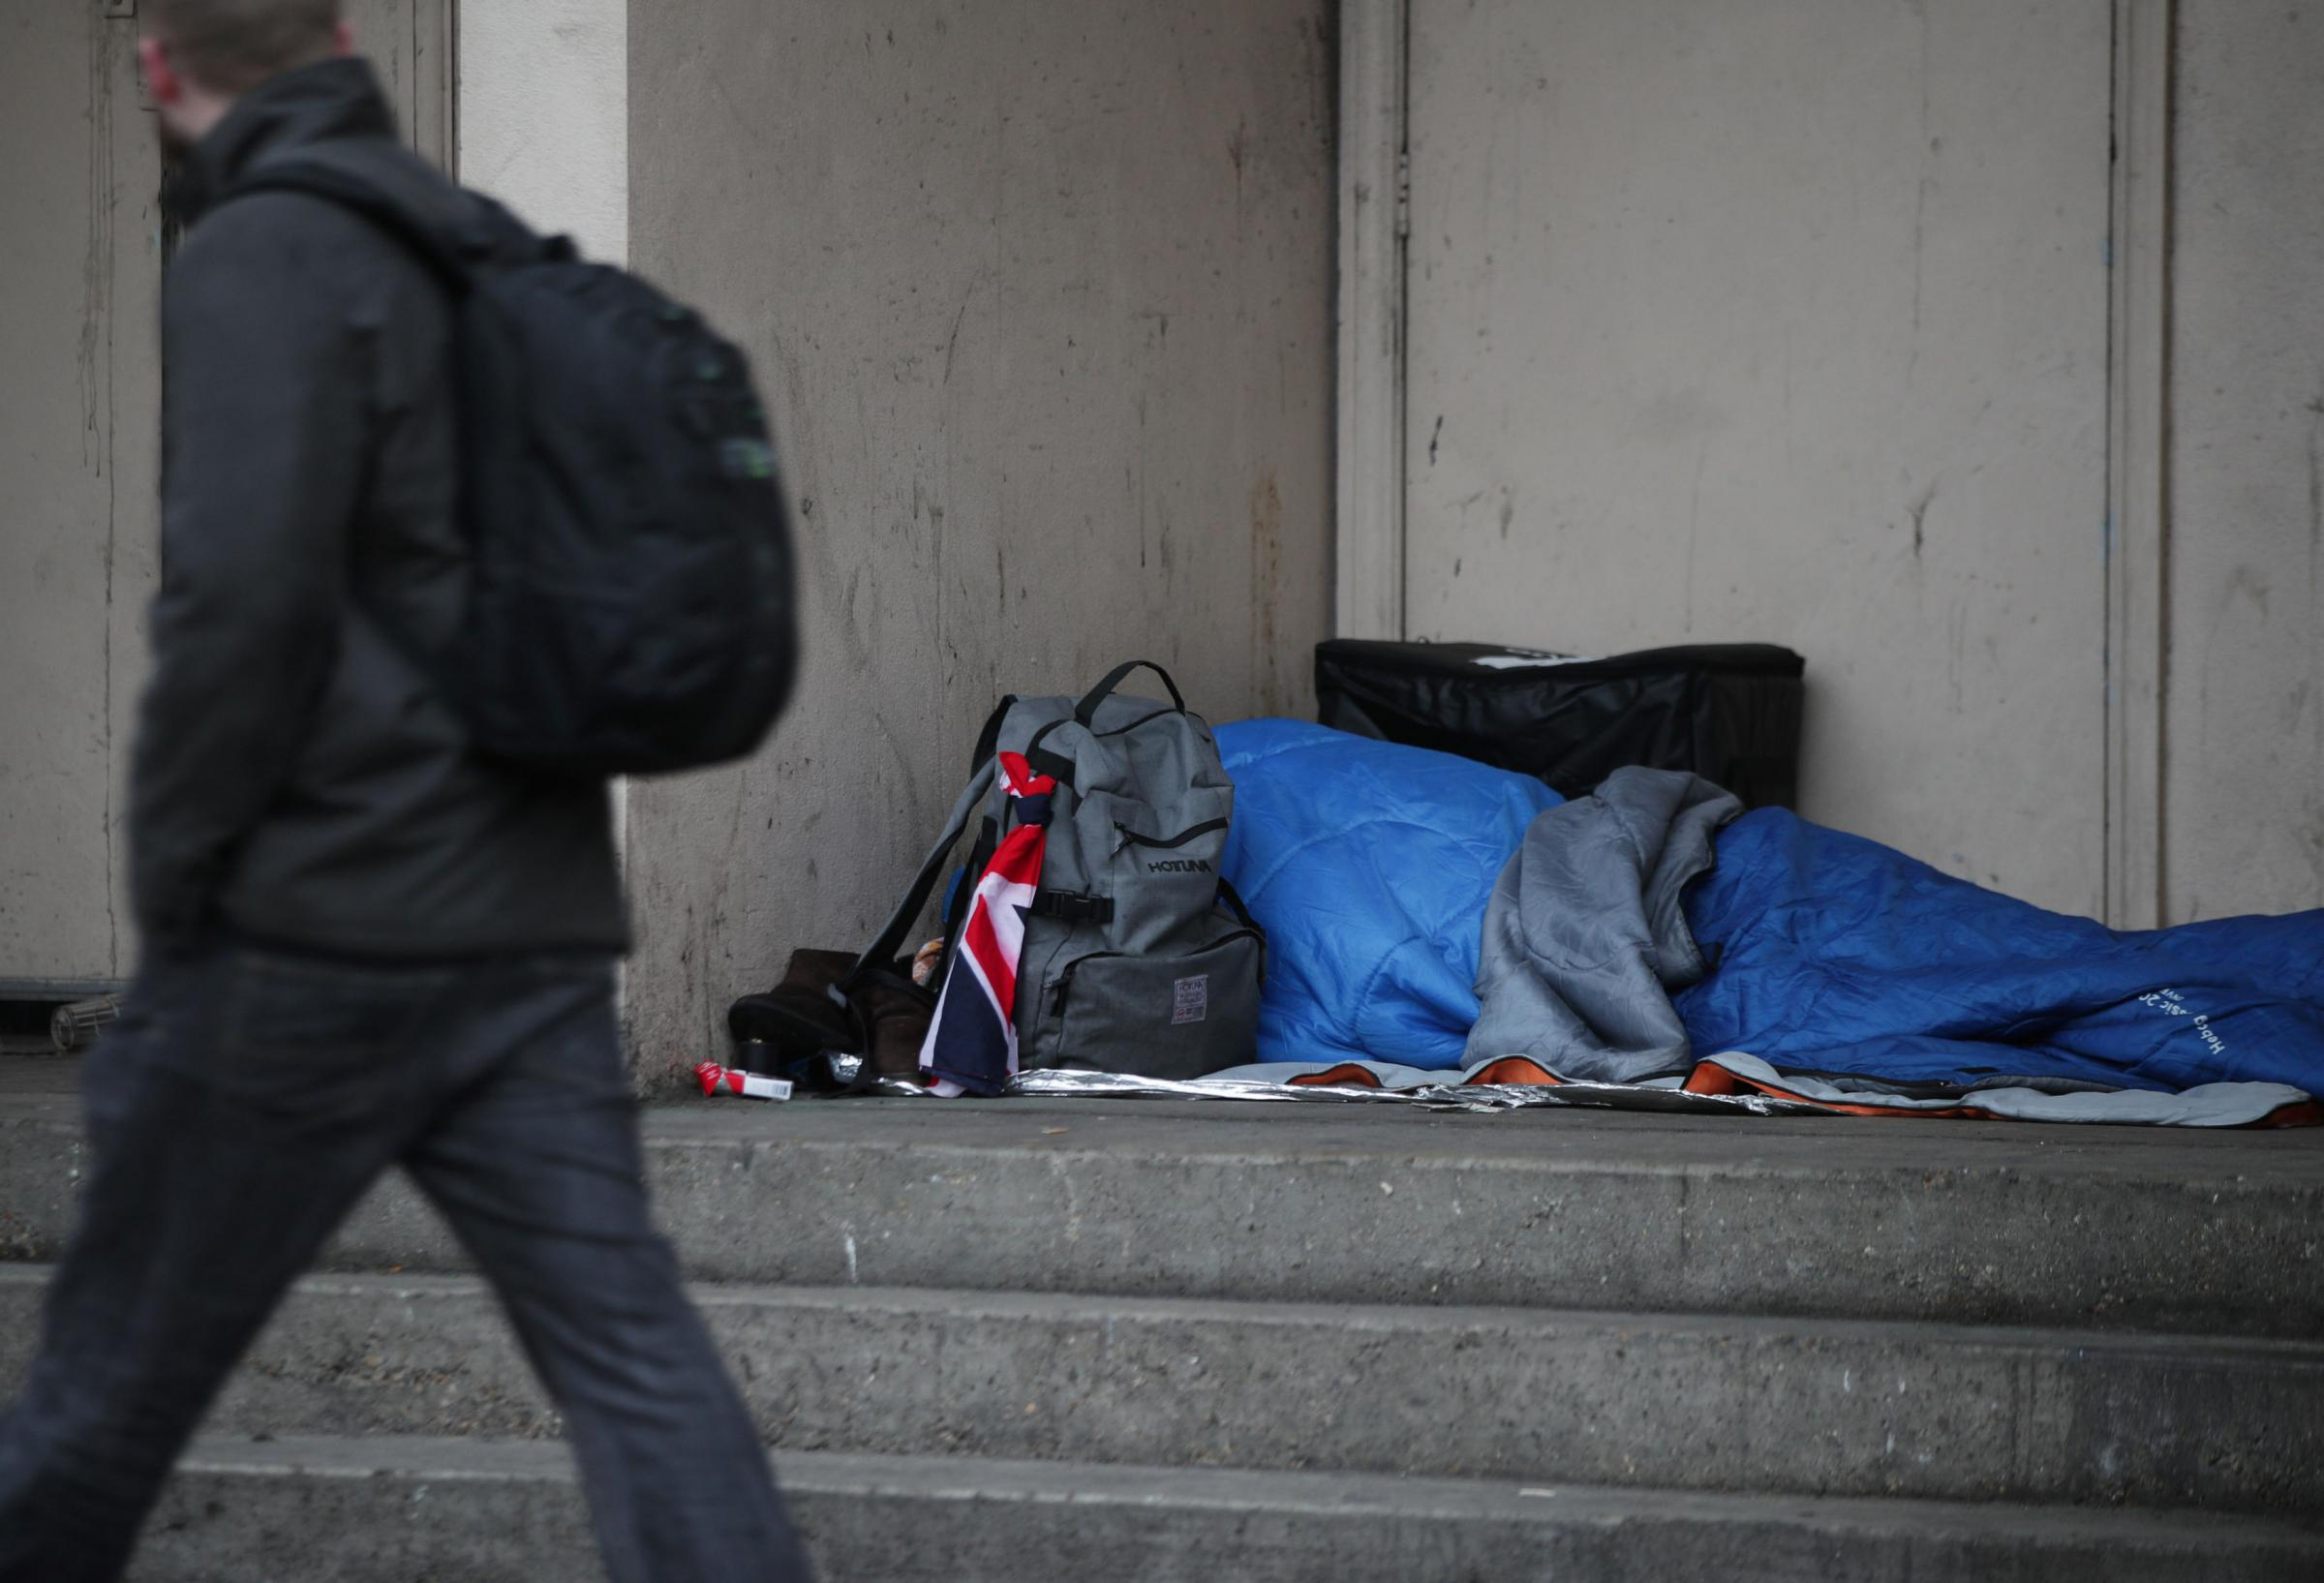 Councils accused of 'social cleansing' of homeless people by issuing fines